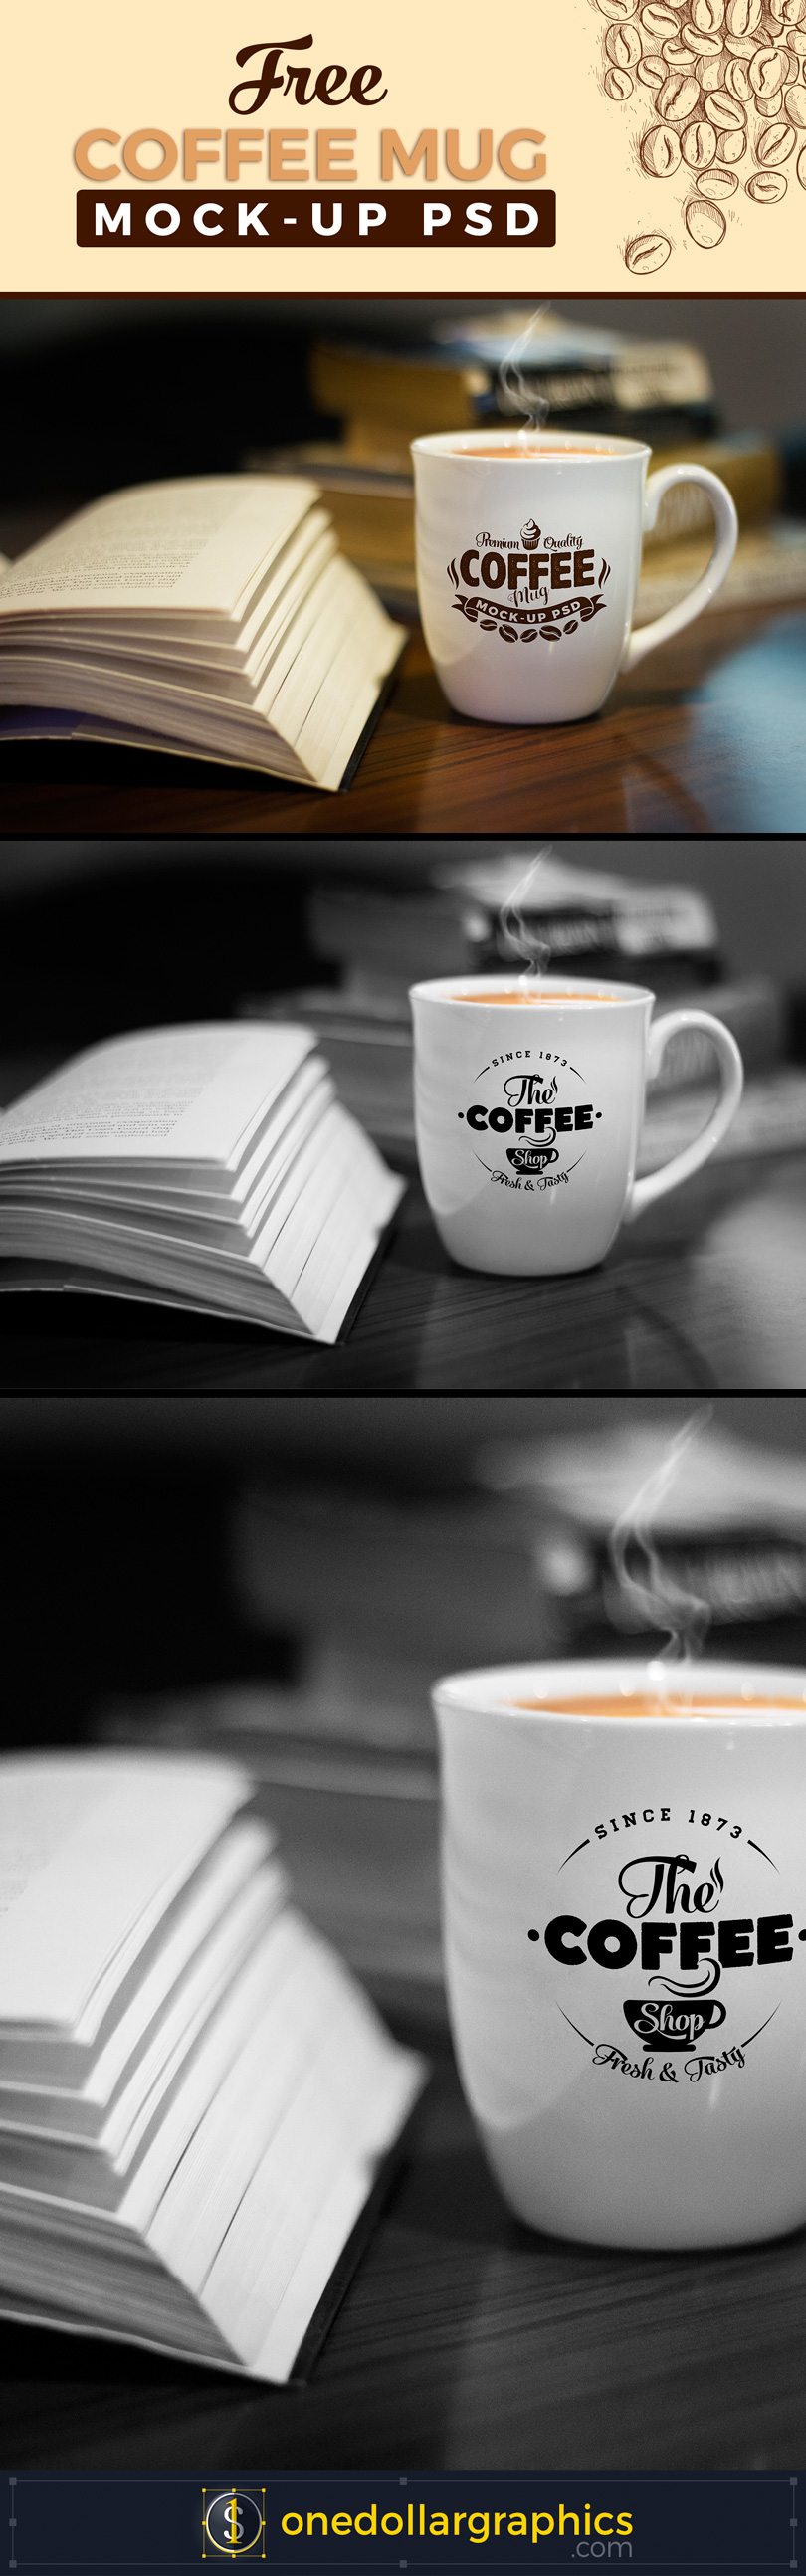 Coffee-Mug-Mockup-PSD-Post-Image-2